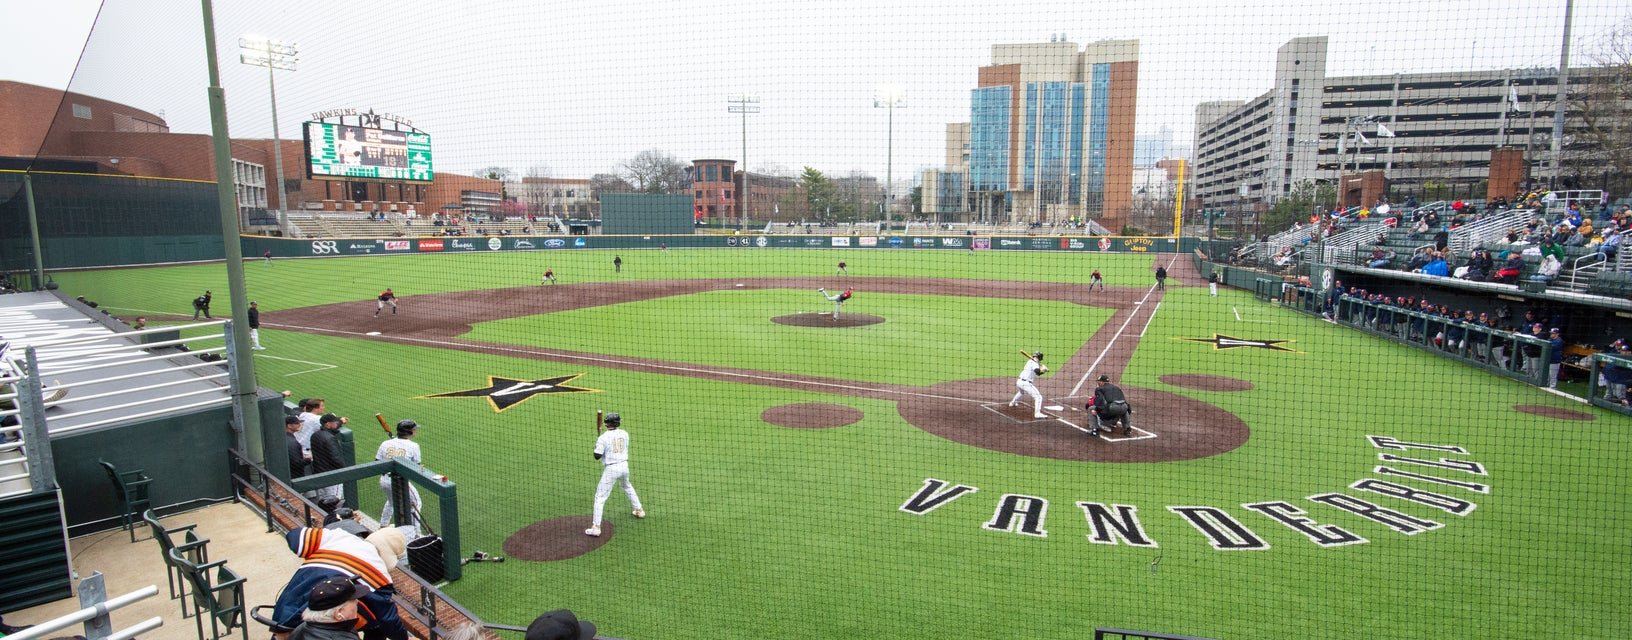 Vanderbilt Baseball Tickets